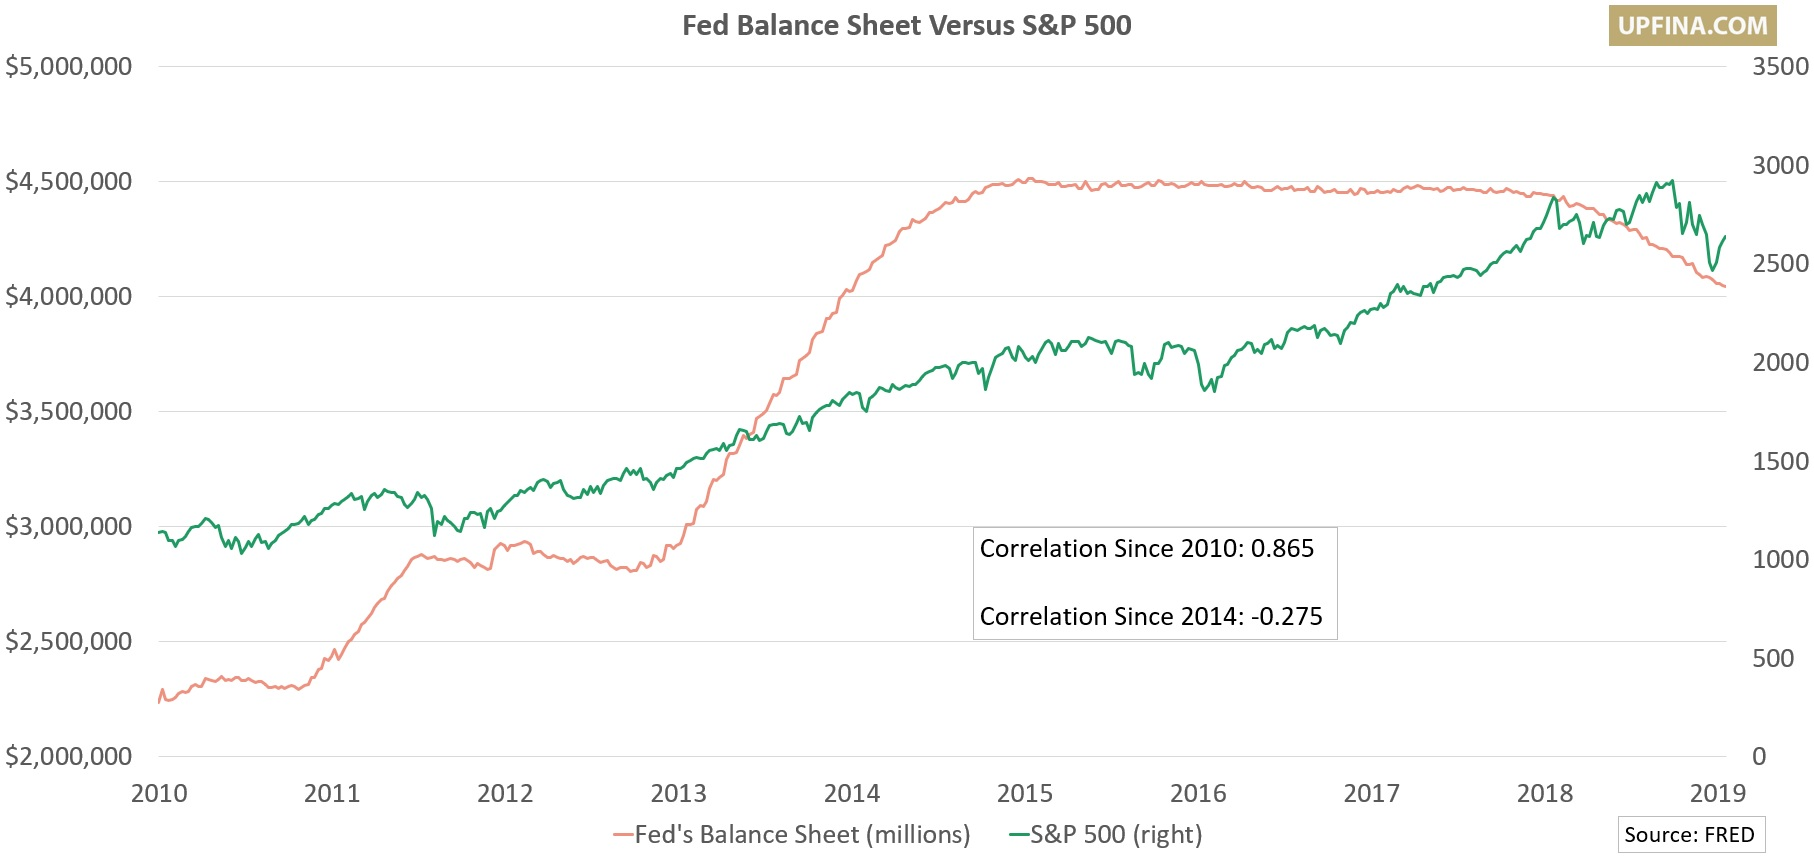 UPFINA - Fed Balance Sheet Versus S&P 500